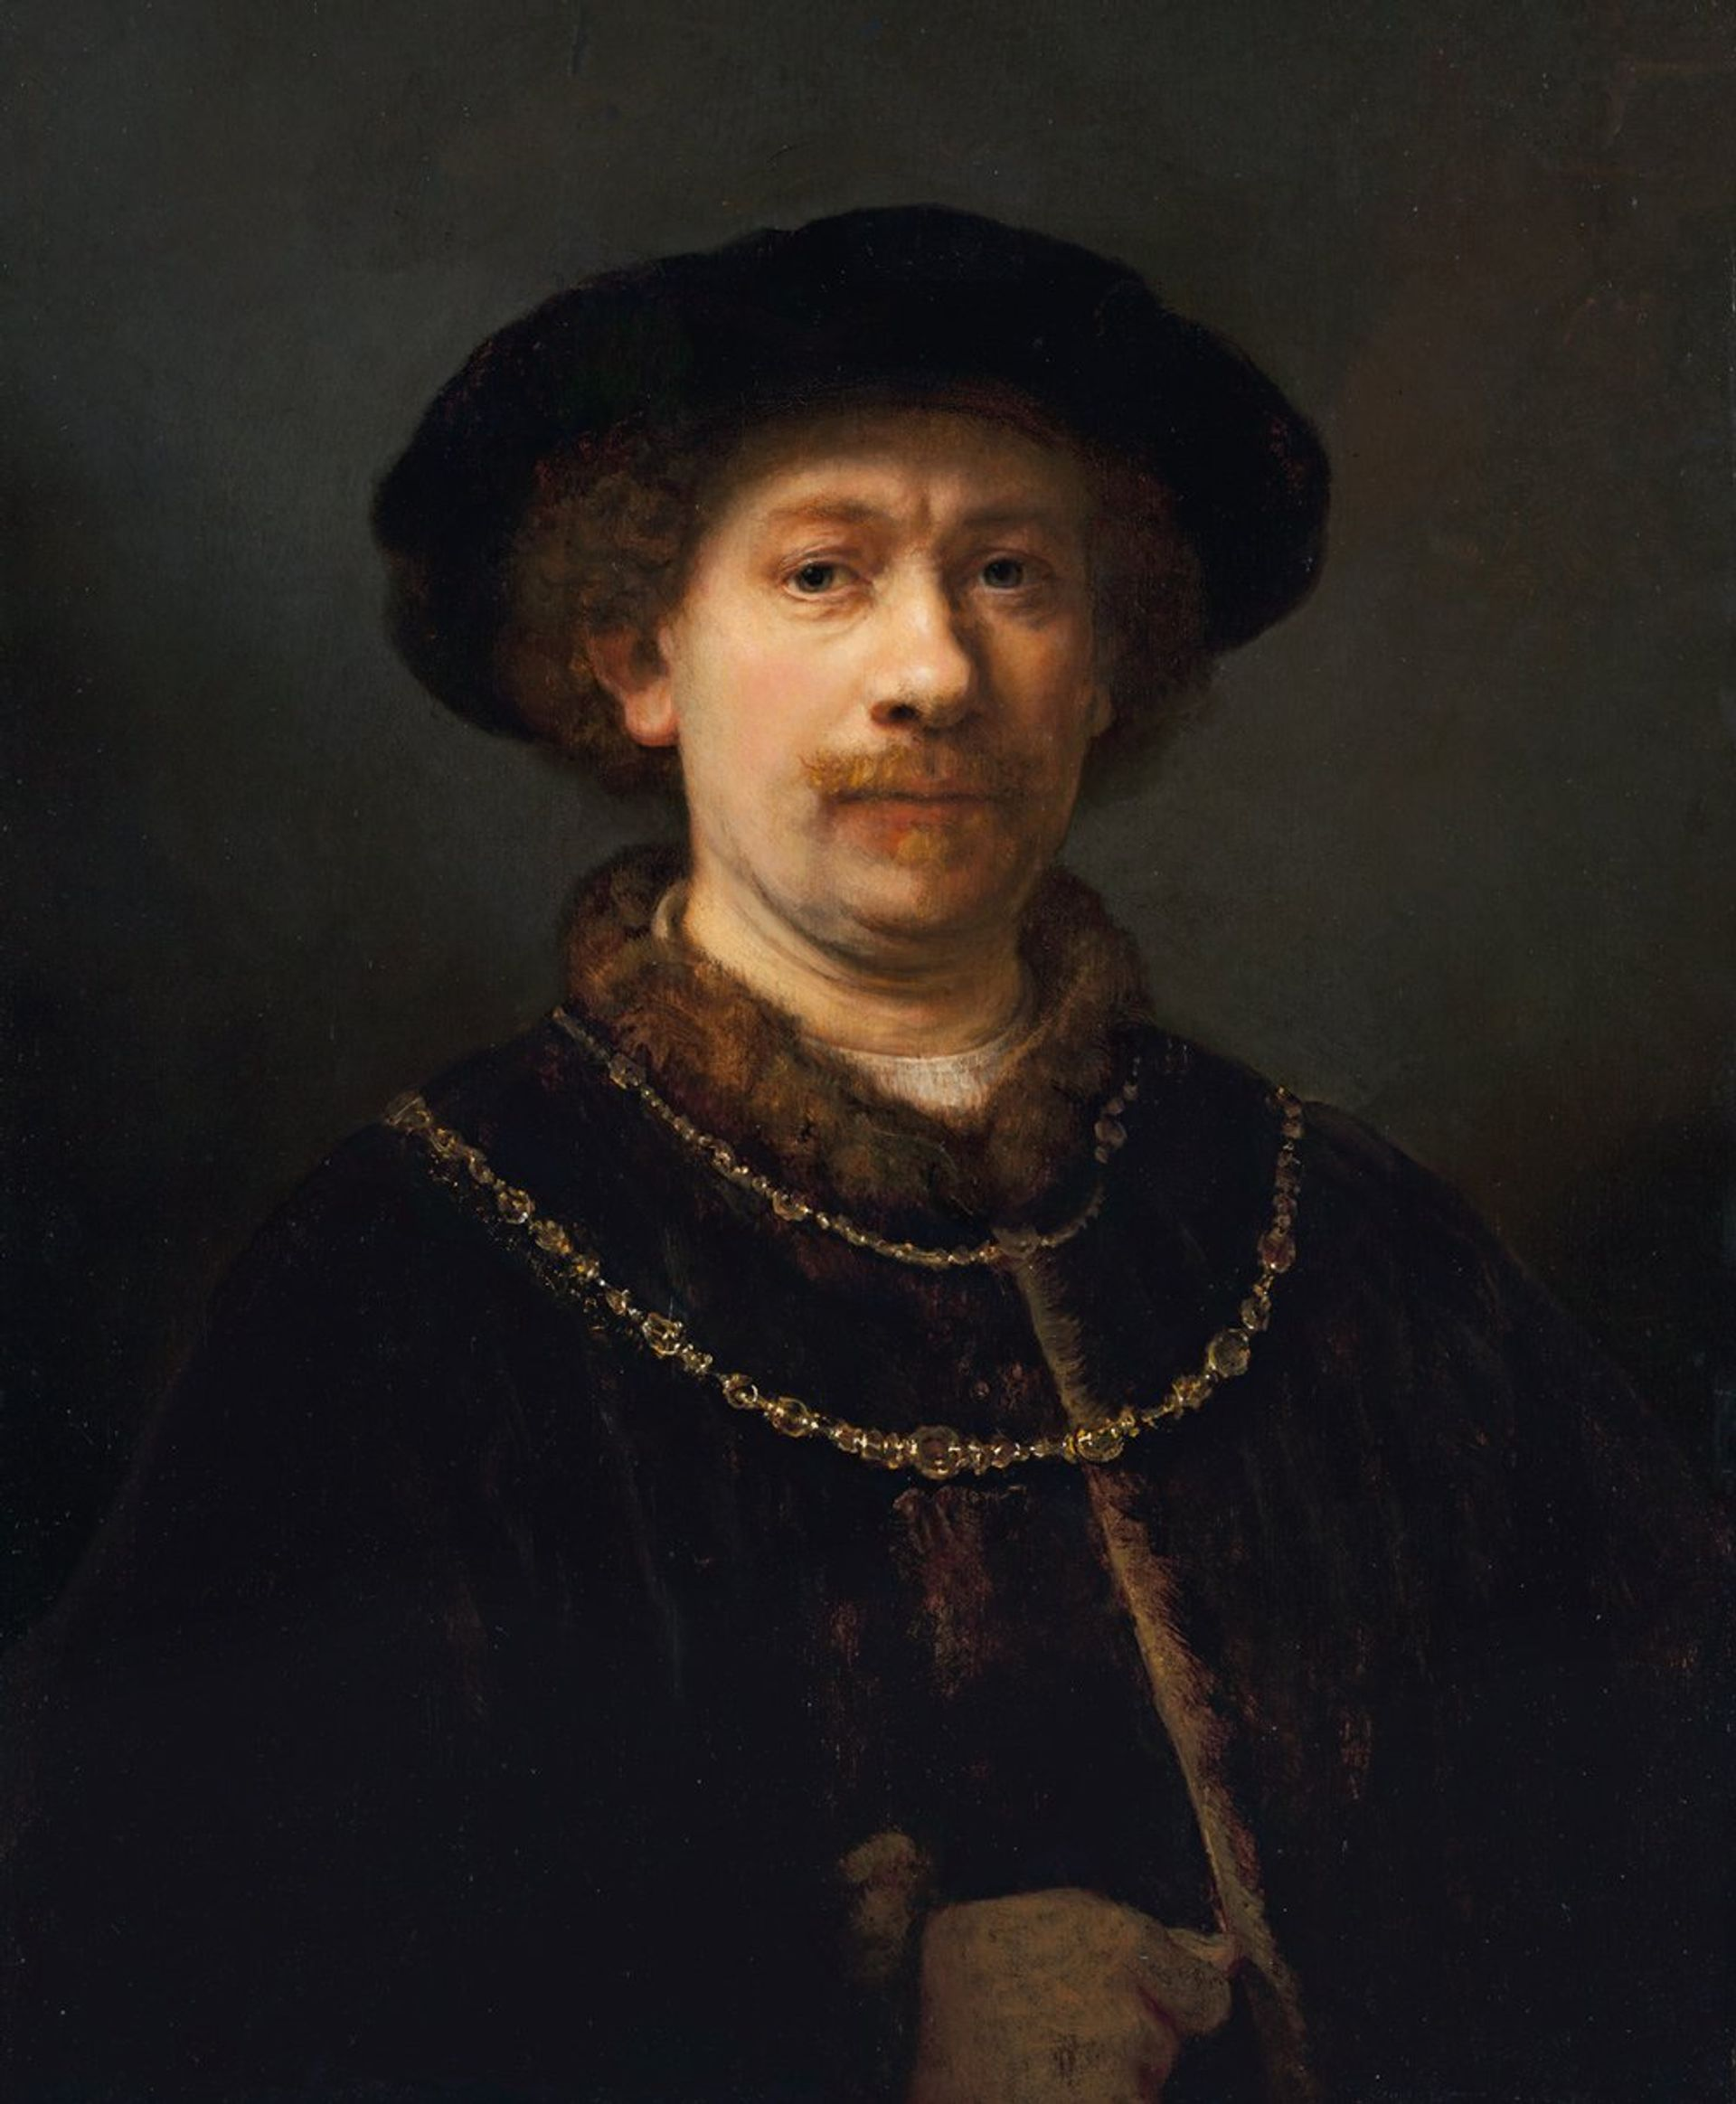 Rembrandt van Rijn, Self-portrait Wearing a Hat and Two Chains, (1642-43), oil on panel Photo © Museo Nacional Thyssen-Bornemisza, Madrid